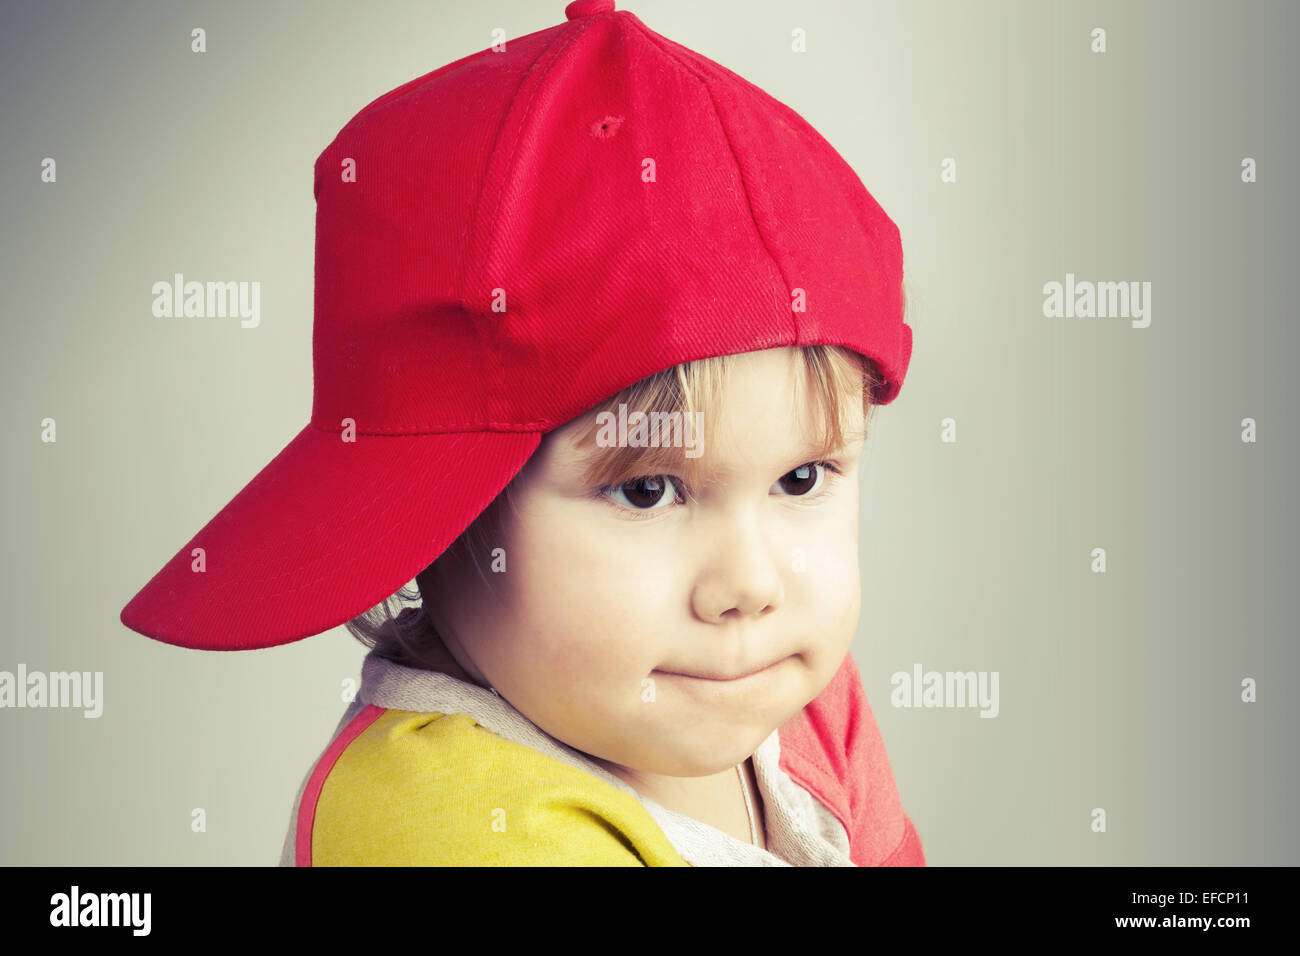 631995bc4 Studio portrait of funny baby girl in red baseball cap over gray ...